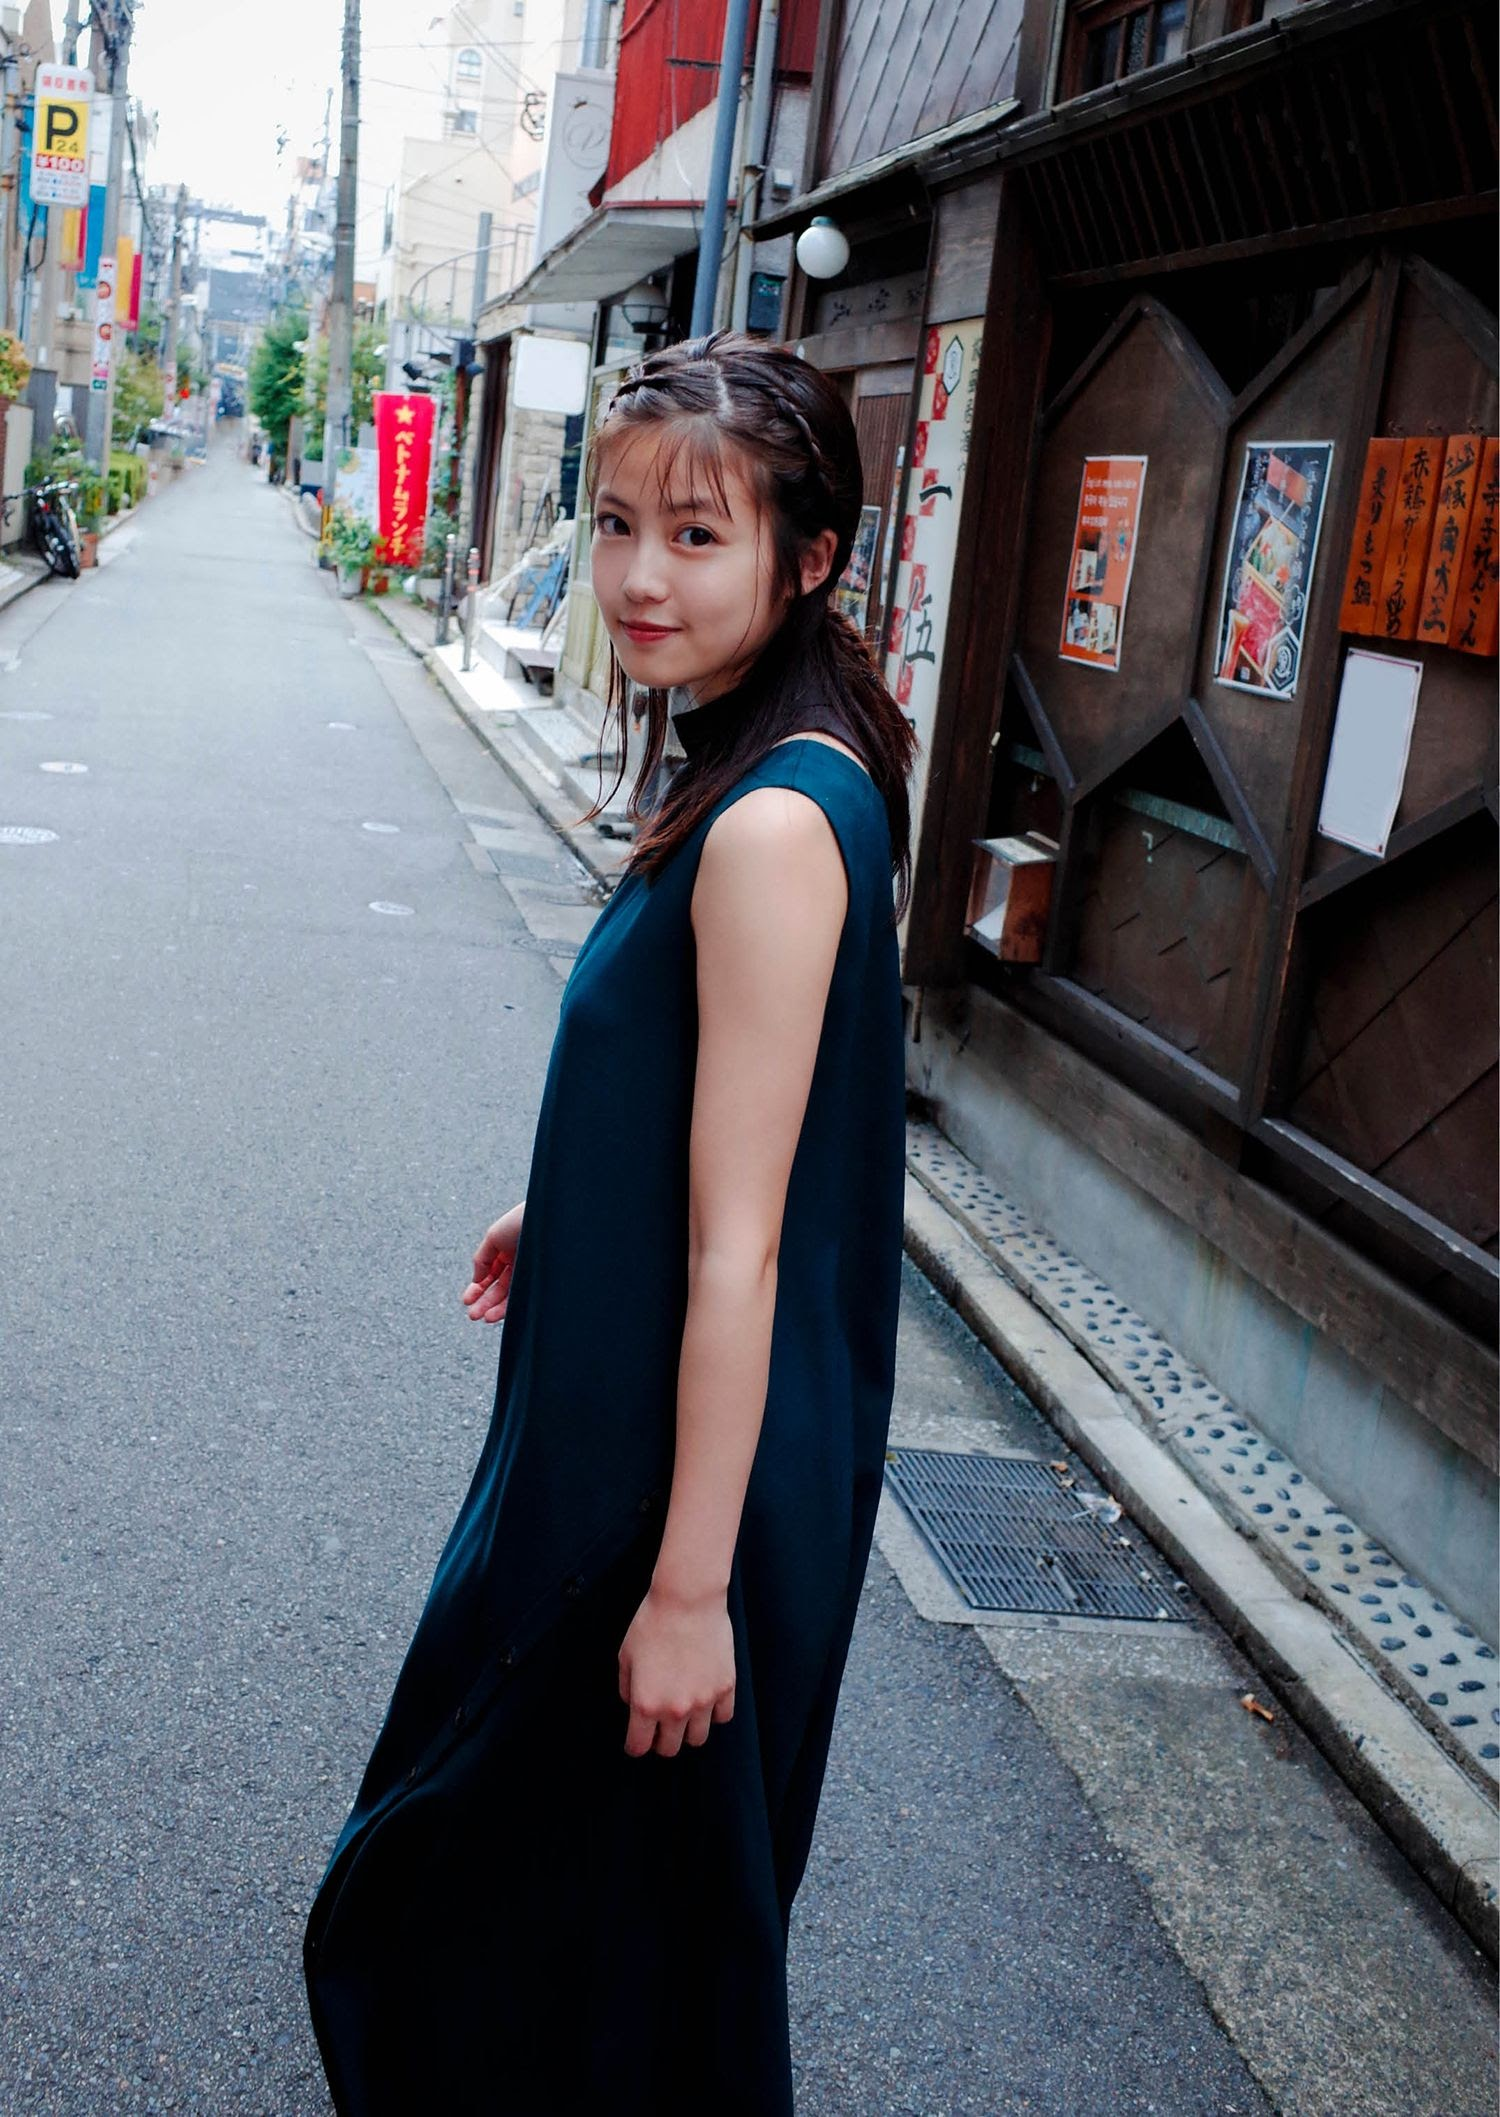 Without a doubt the youngest actress Mio Imada027